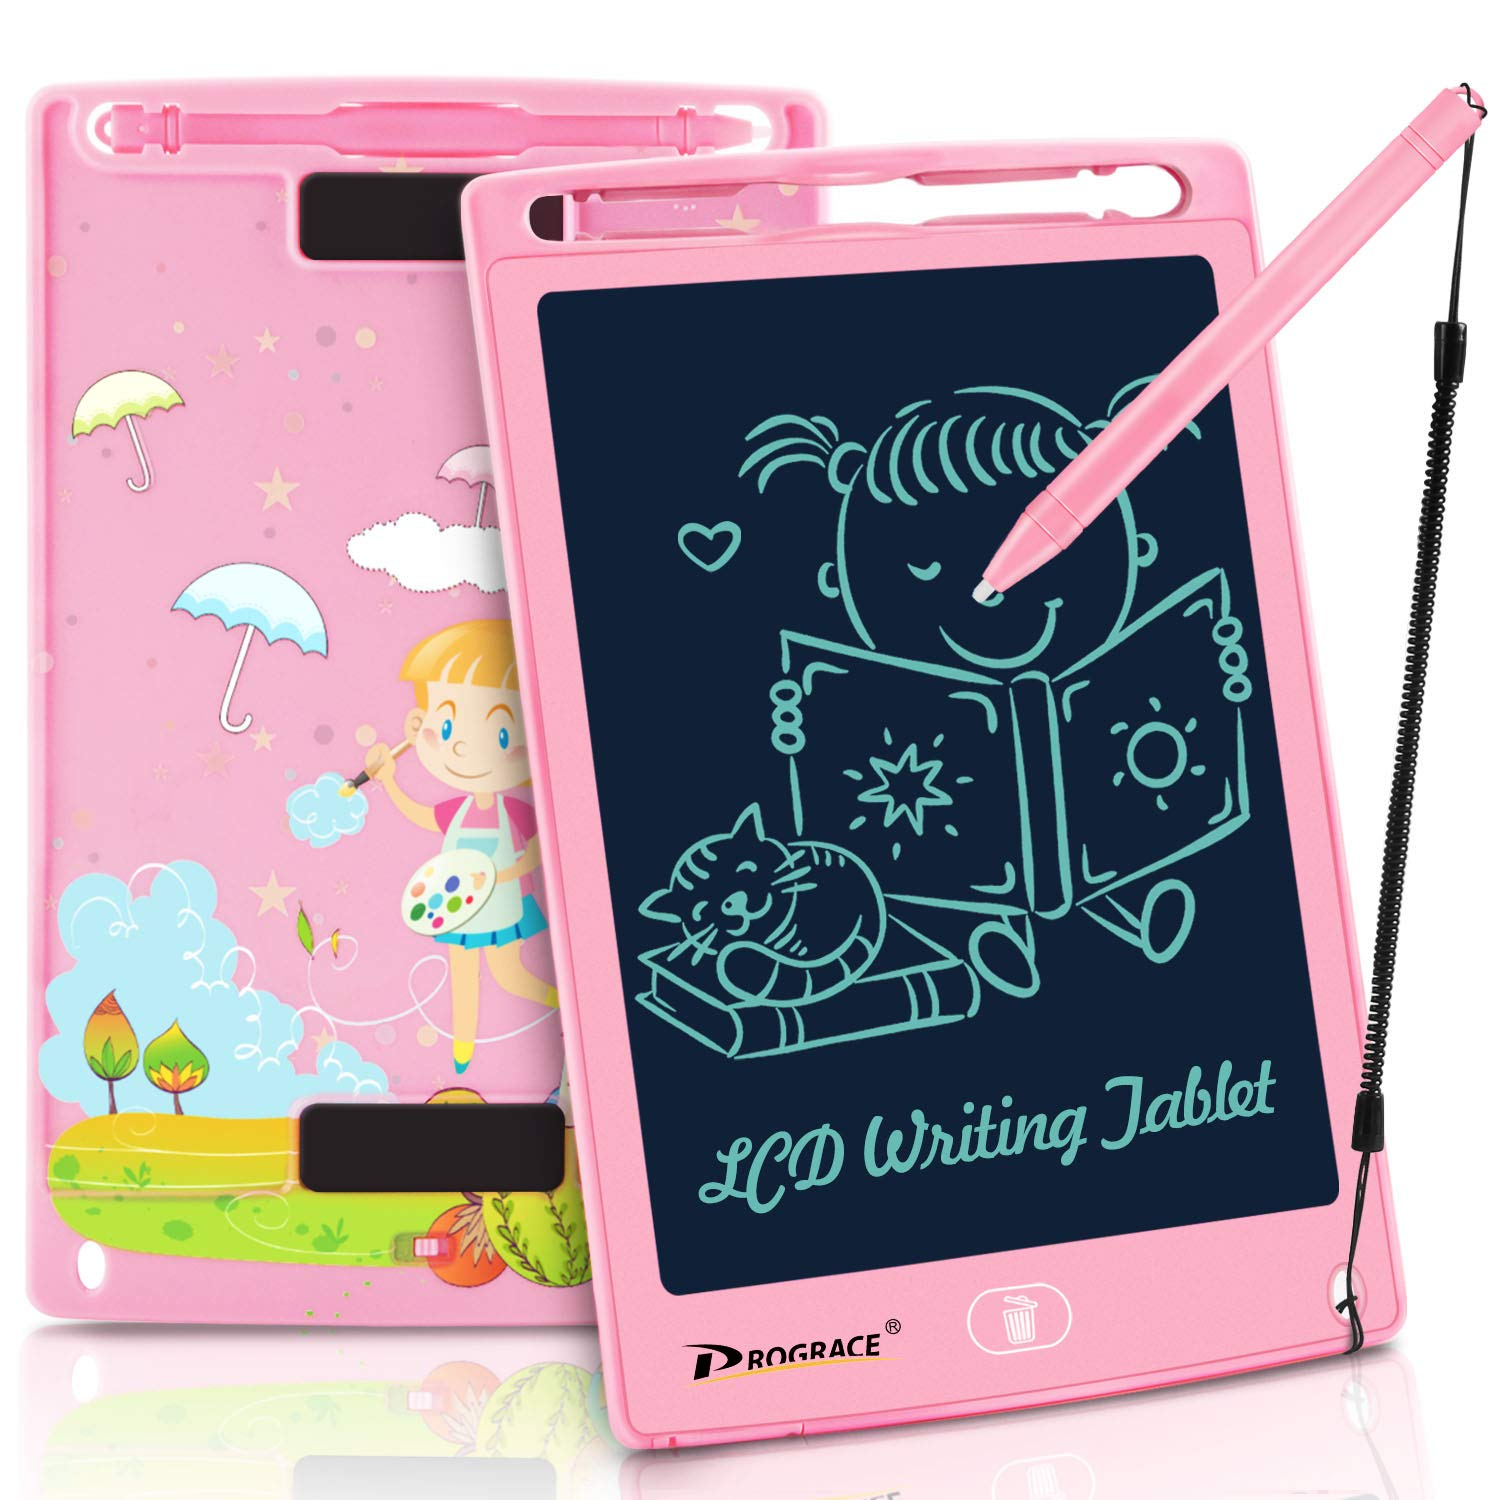 PROGRACE LCD Writing Tablet for Kids Learning Writing Board Magnetic Erase LCD Writing Pad Smart Doodle Drawing Board for Home School Office Portable Electronic Digital Handwriting Pad 8.5'' by PROGRACE